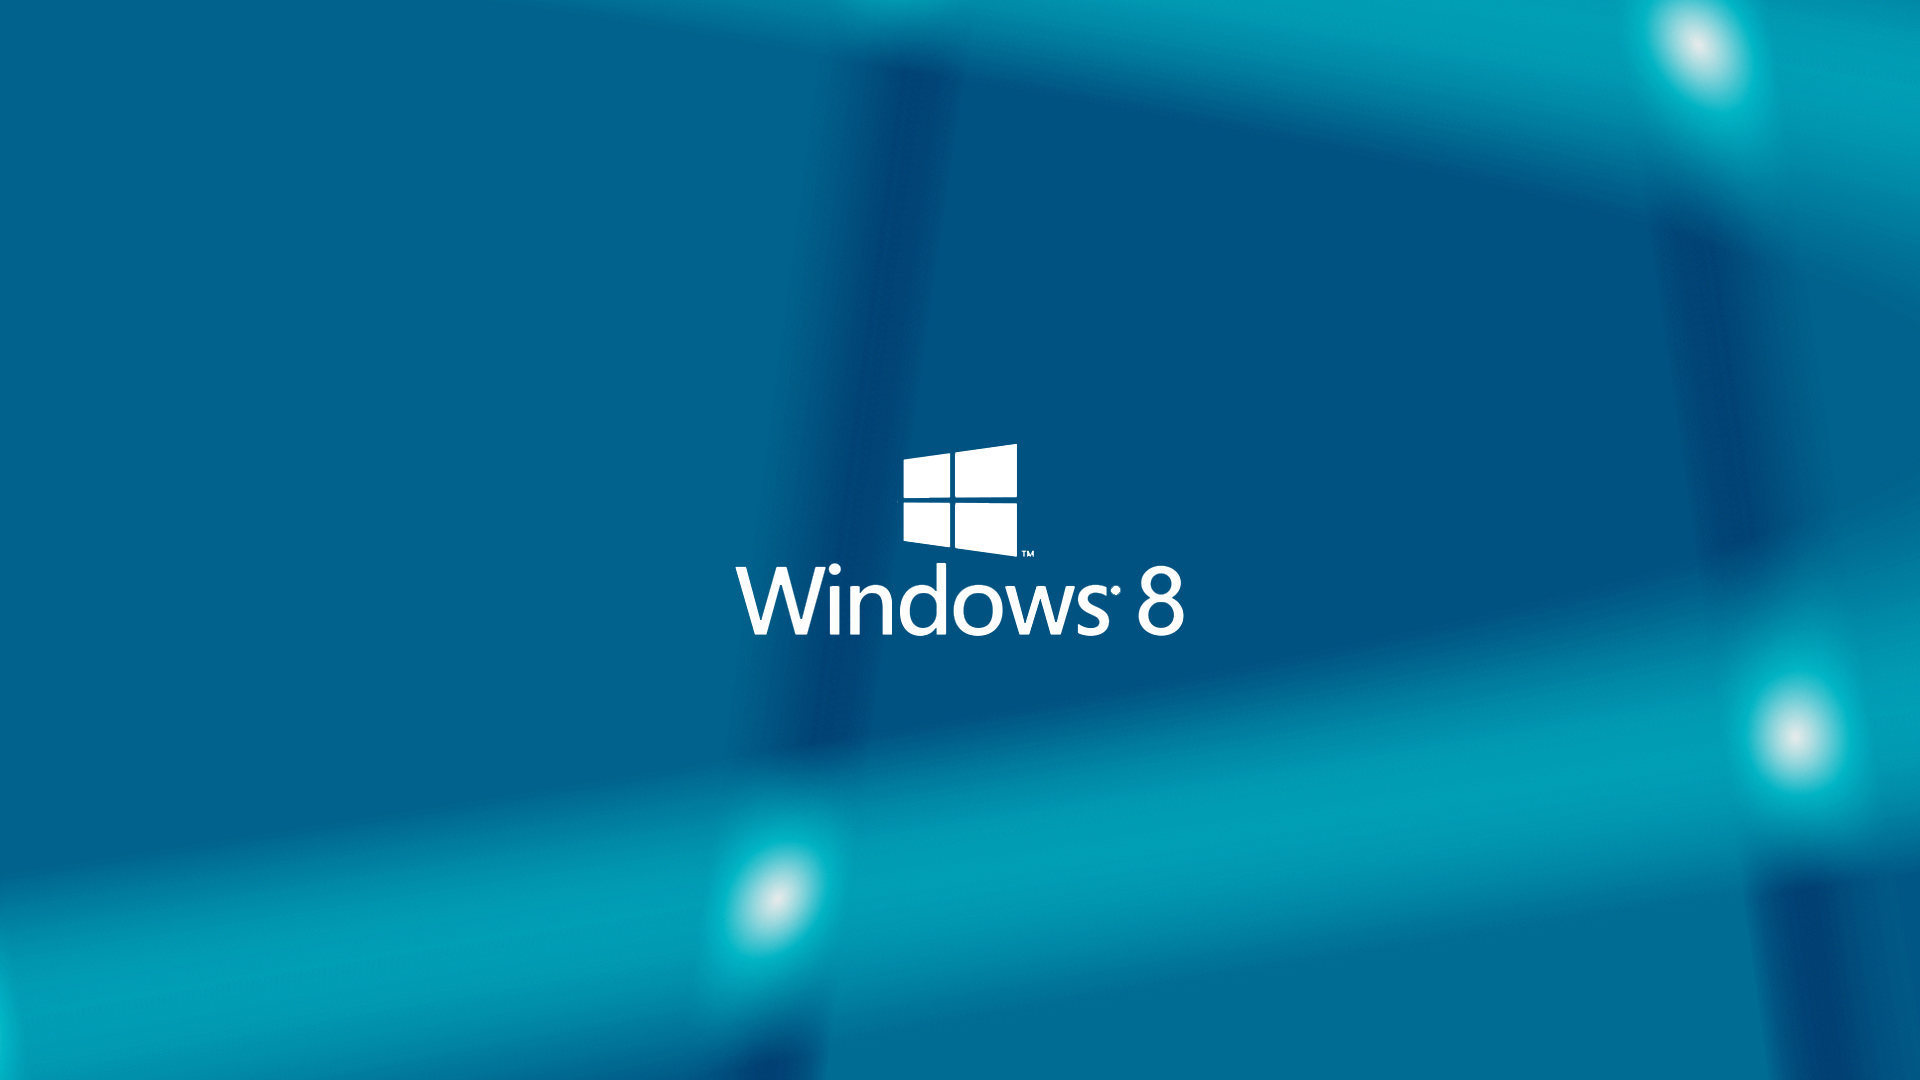 ... Windows 8 Wallpaper 4 ...